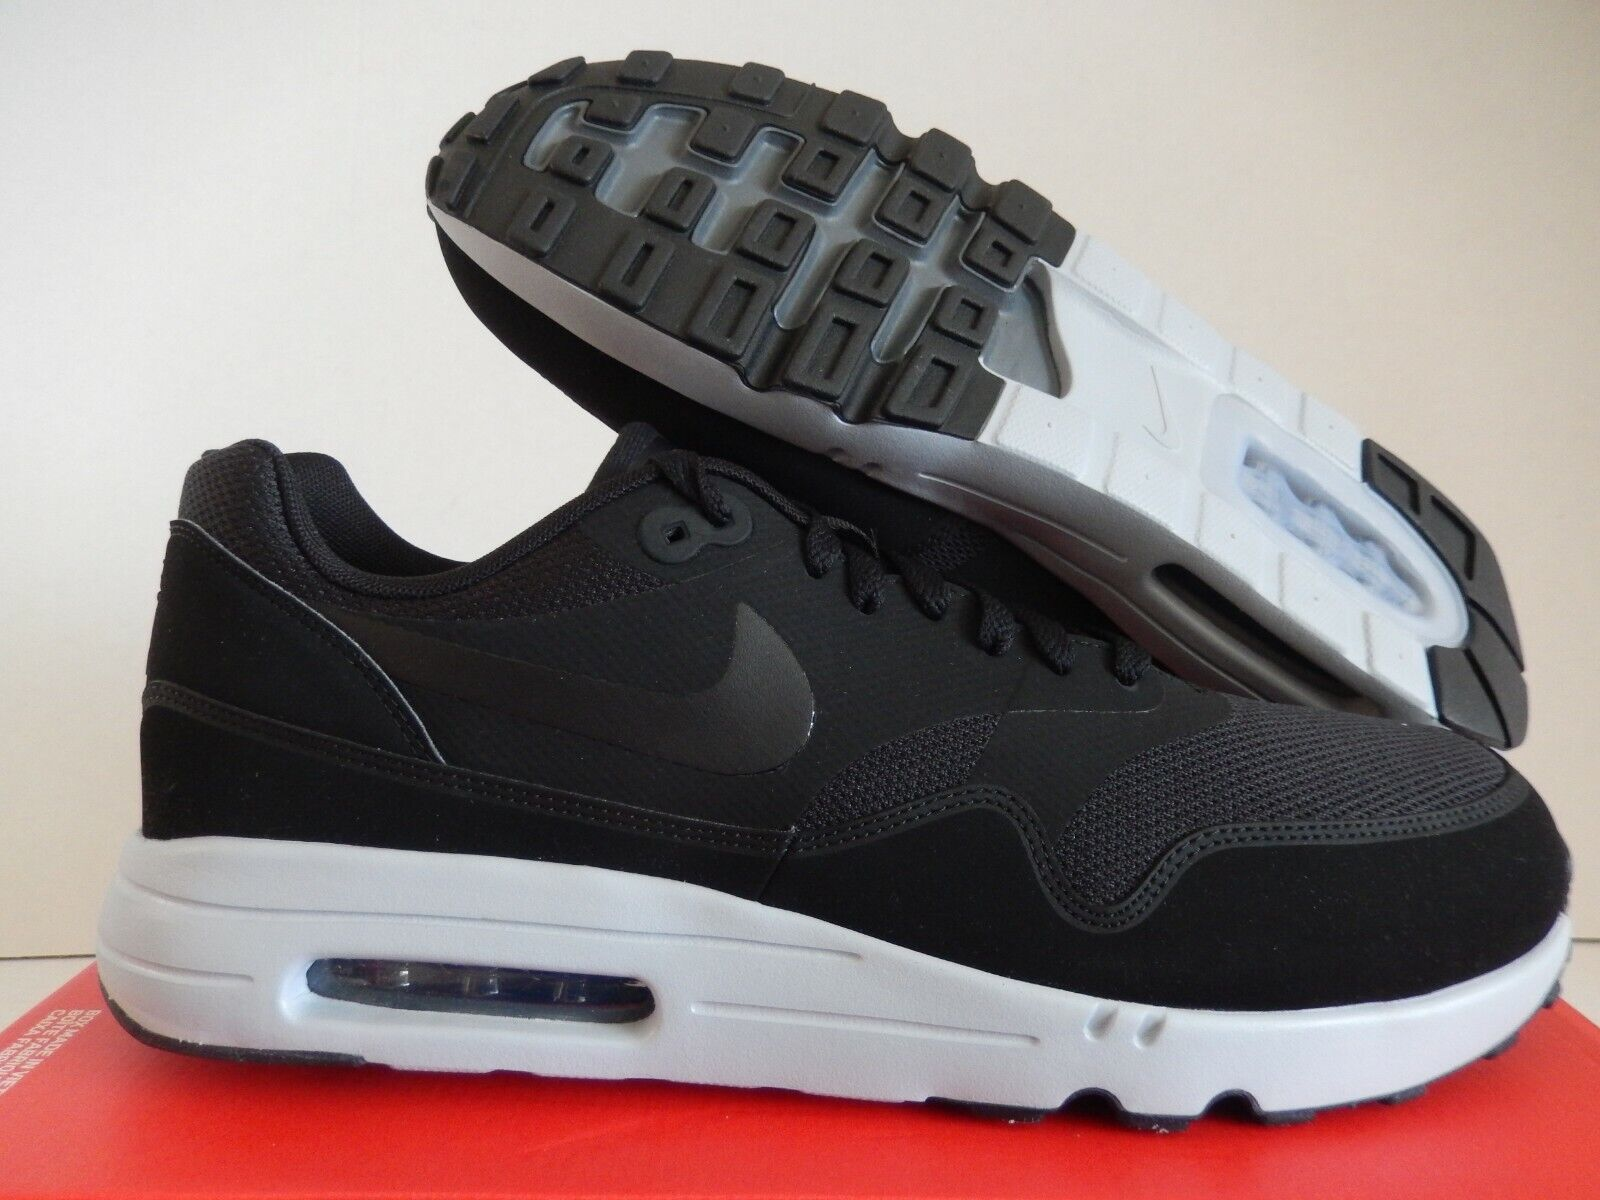 NIKE AIR MAX 1 ULTRA 2.0 ESSENTIAL BLACK BLACK WOLF GREY SZ 13 [875679 002]